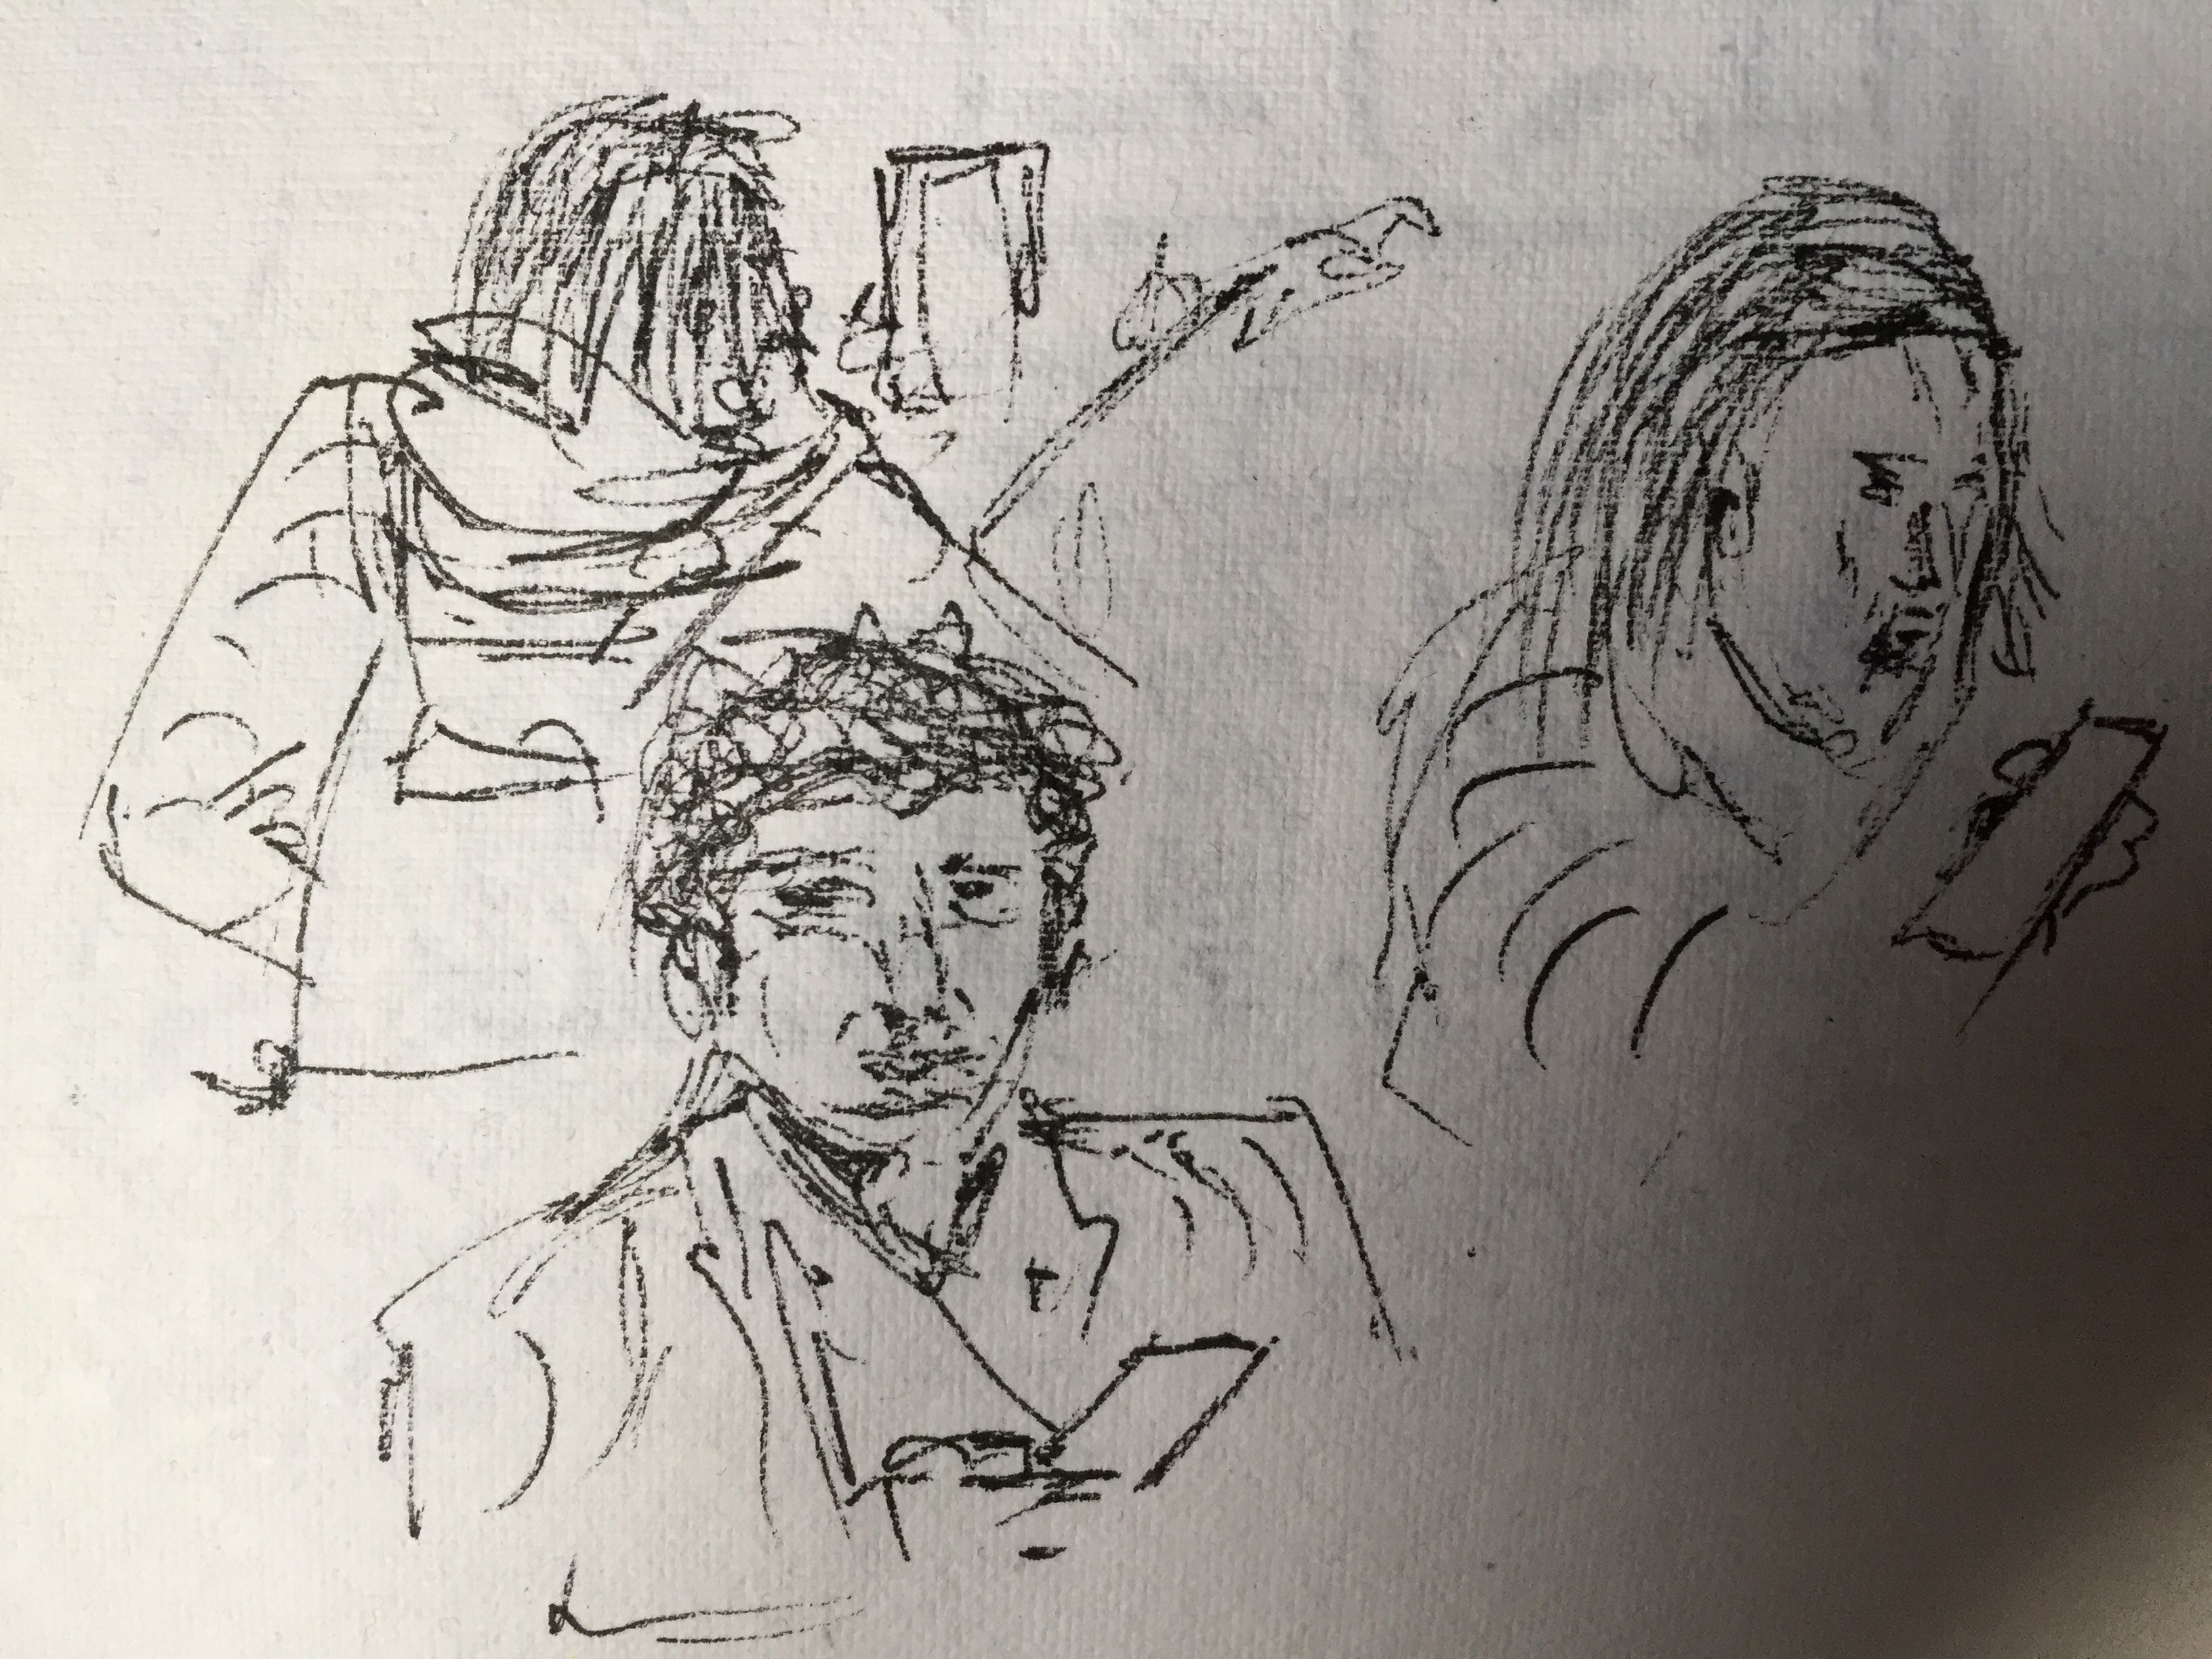 Photos - Glasgow Life Drawing and Sketching (Glasgow